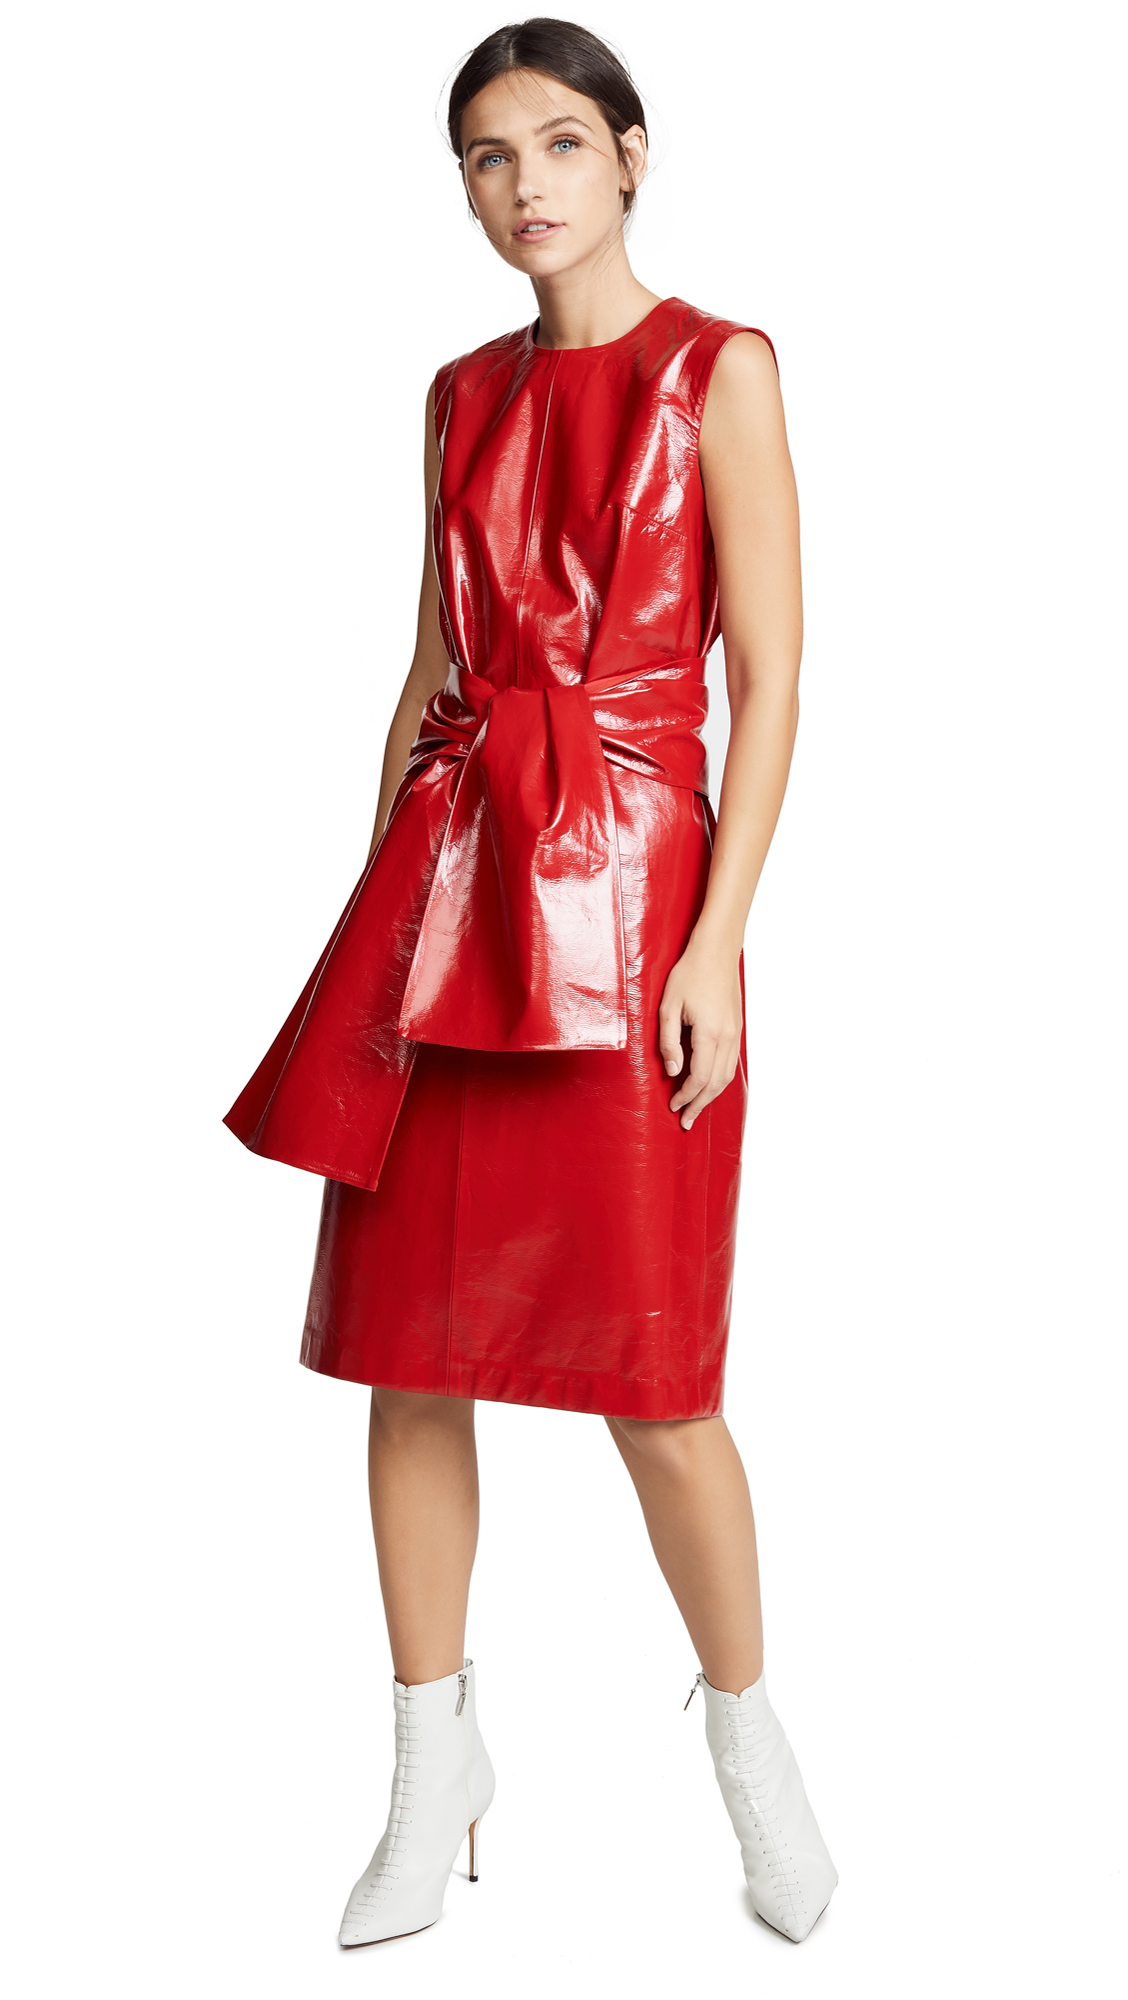 MSGM Faux Leather Dress – 60% Off Sale